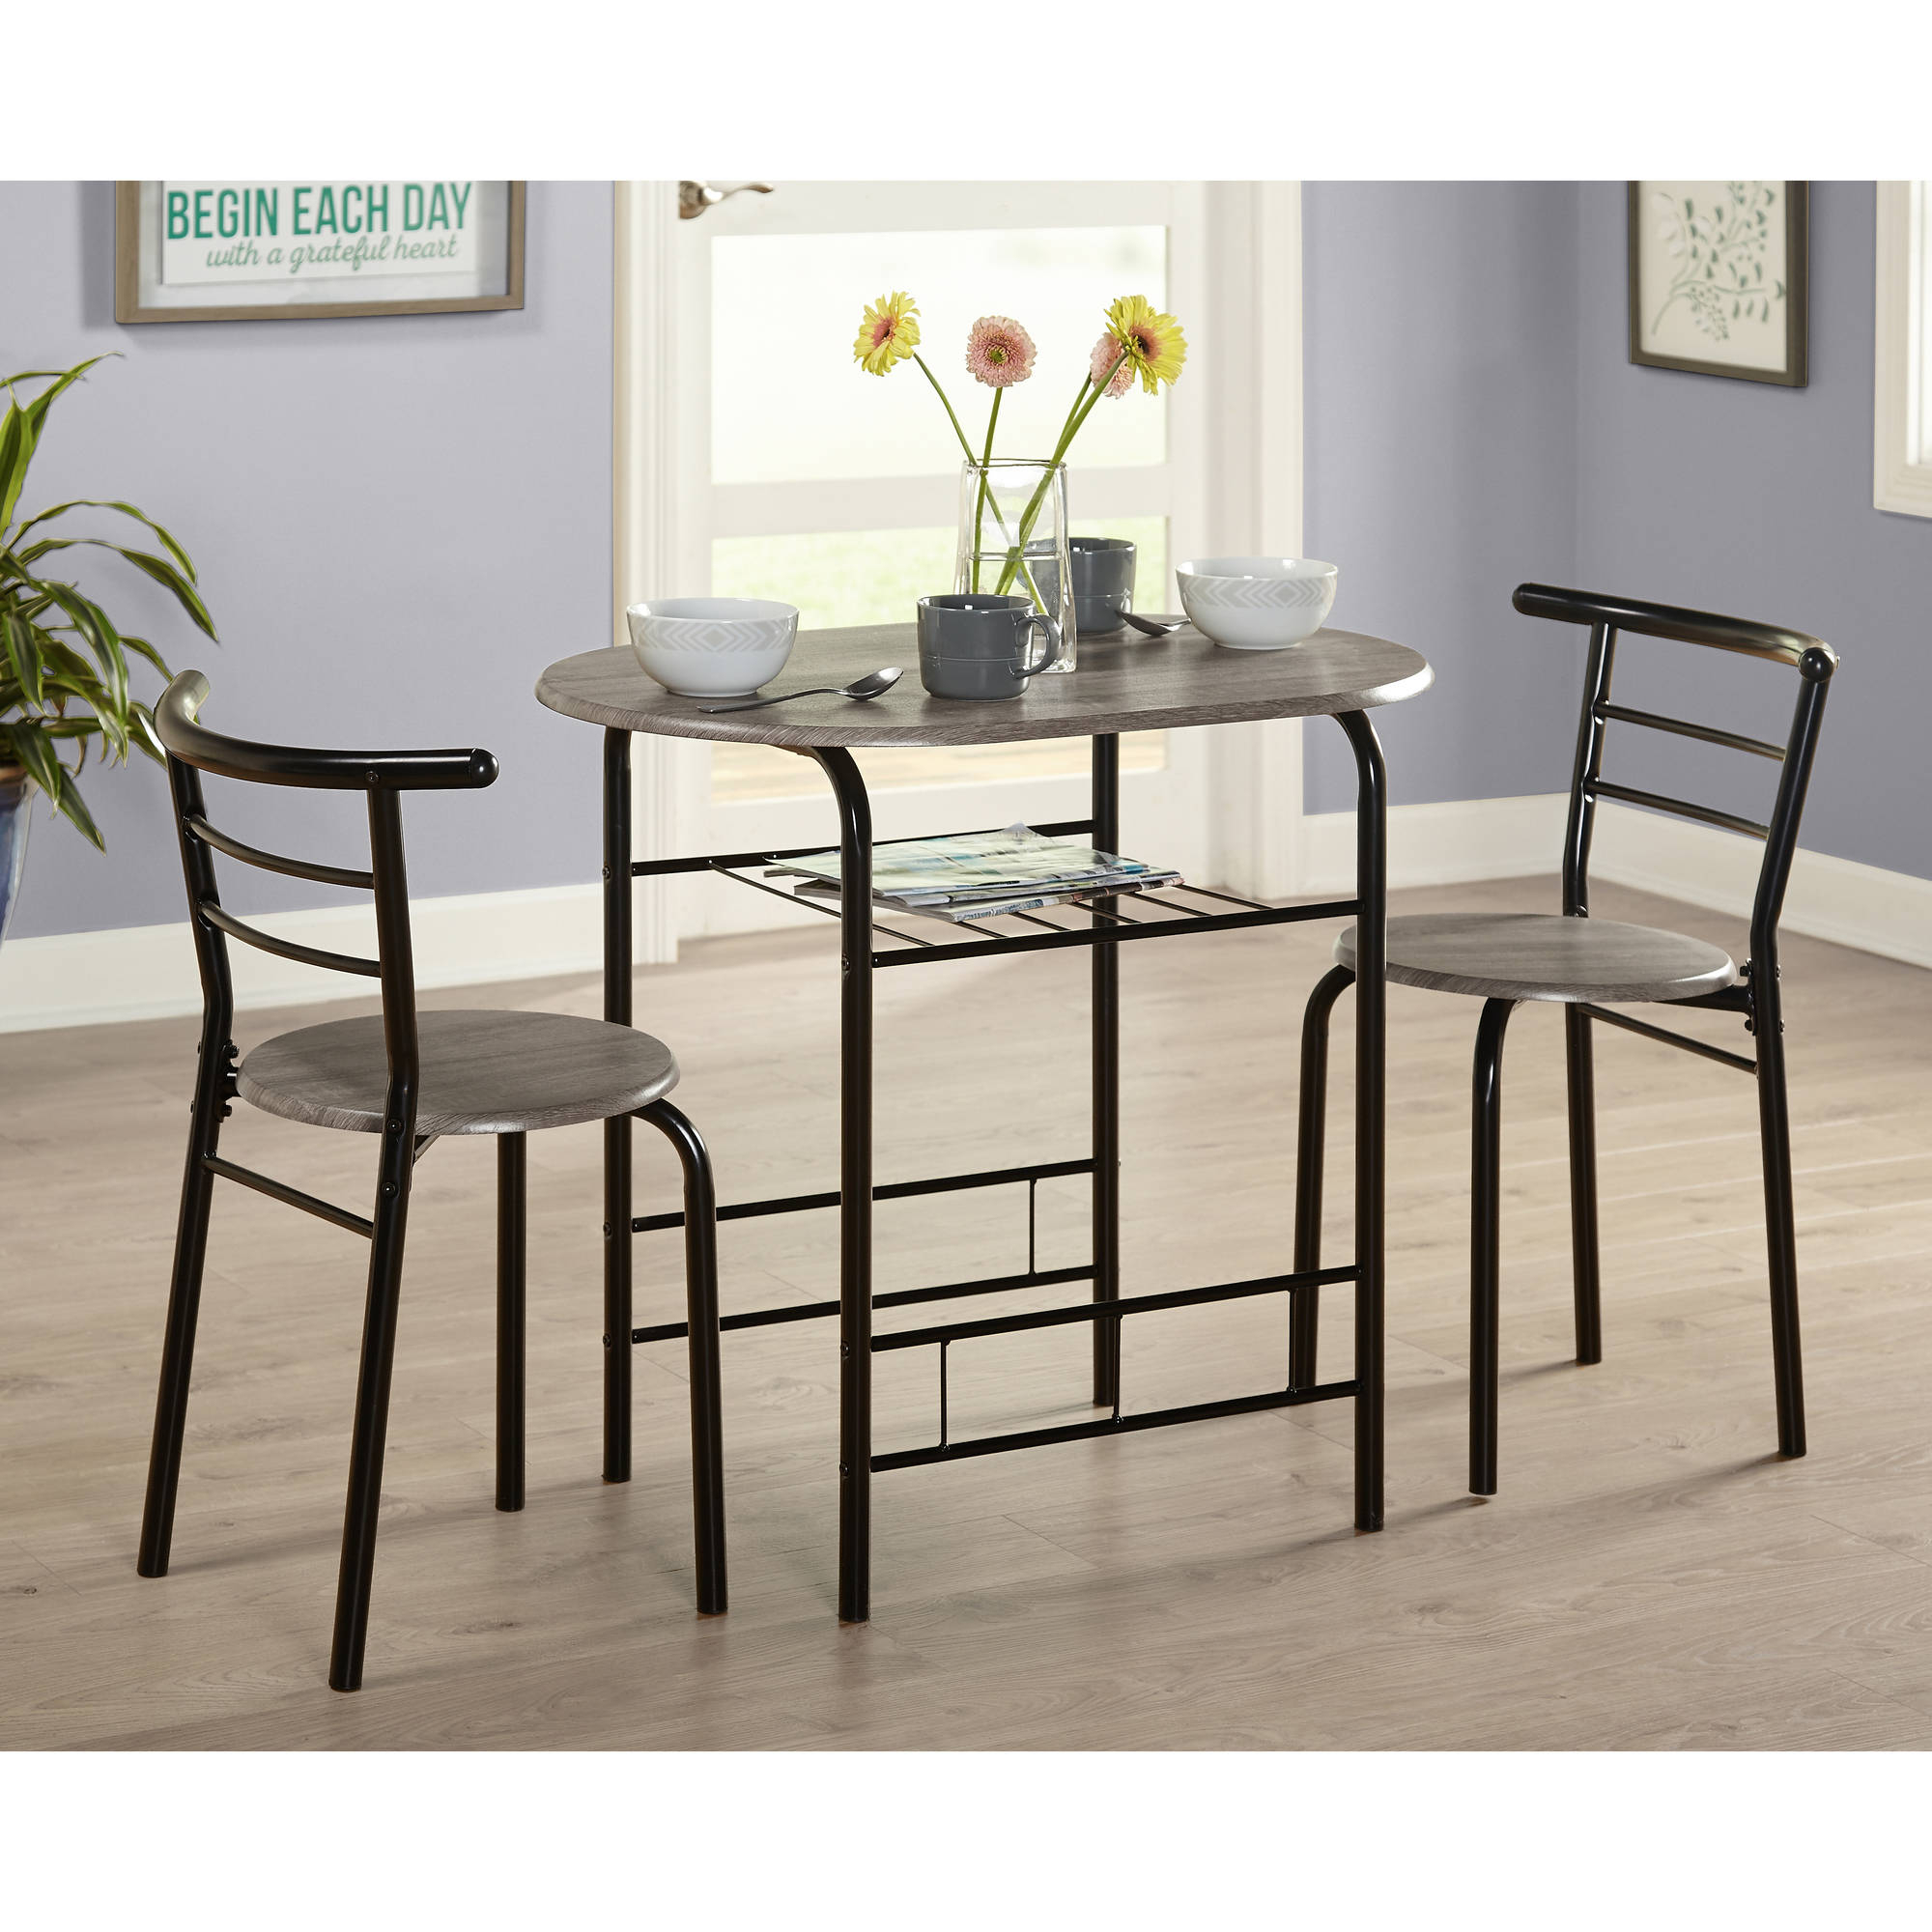 Tms 3 Piece Bistro Dining Set Throughout Current Rossiter 3 Piece Dining Sets (View 18 of 20)